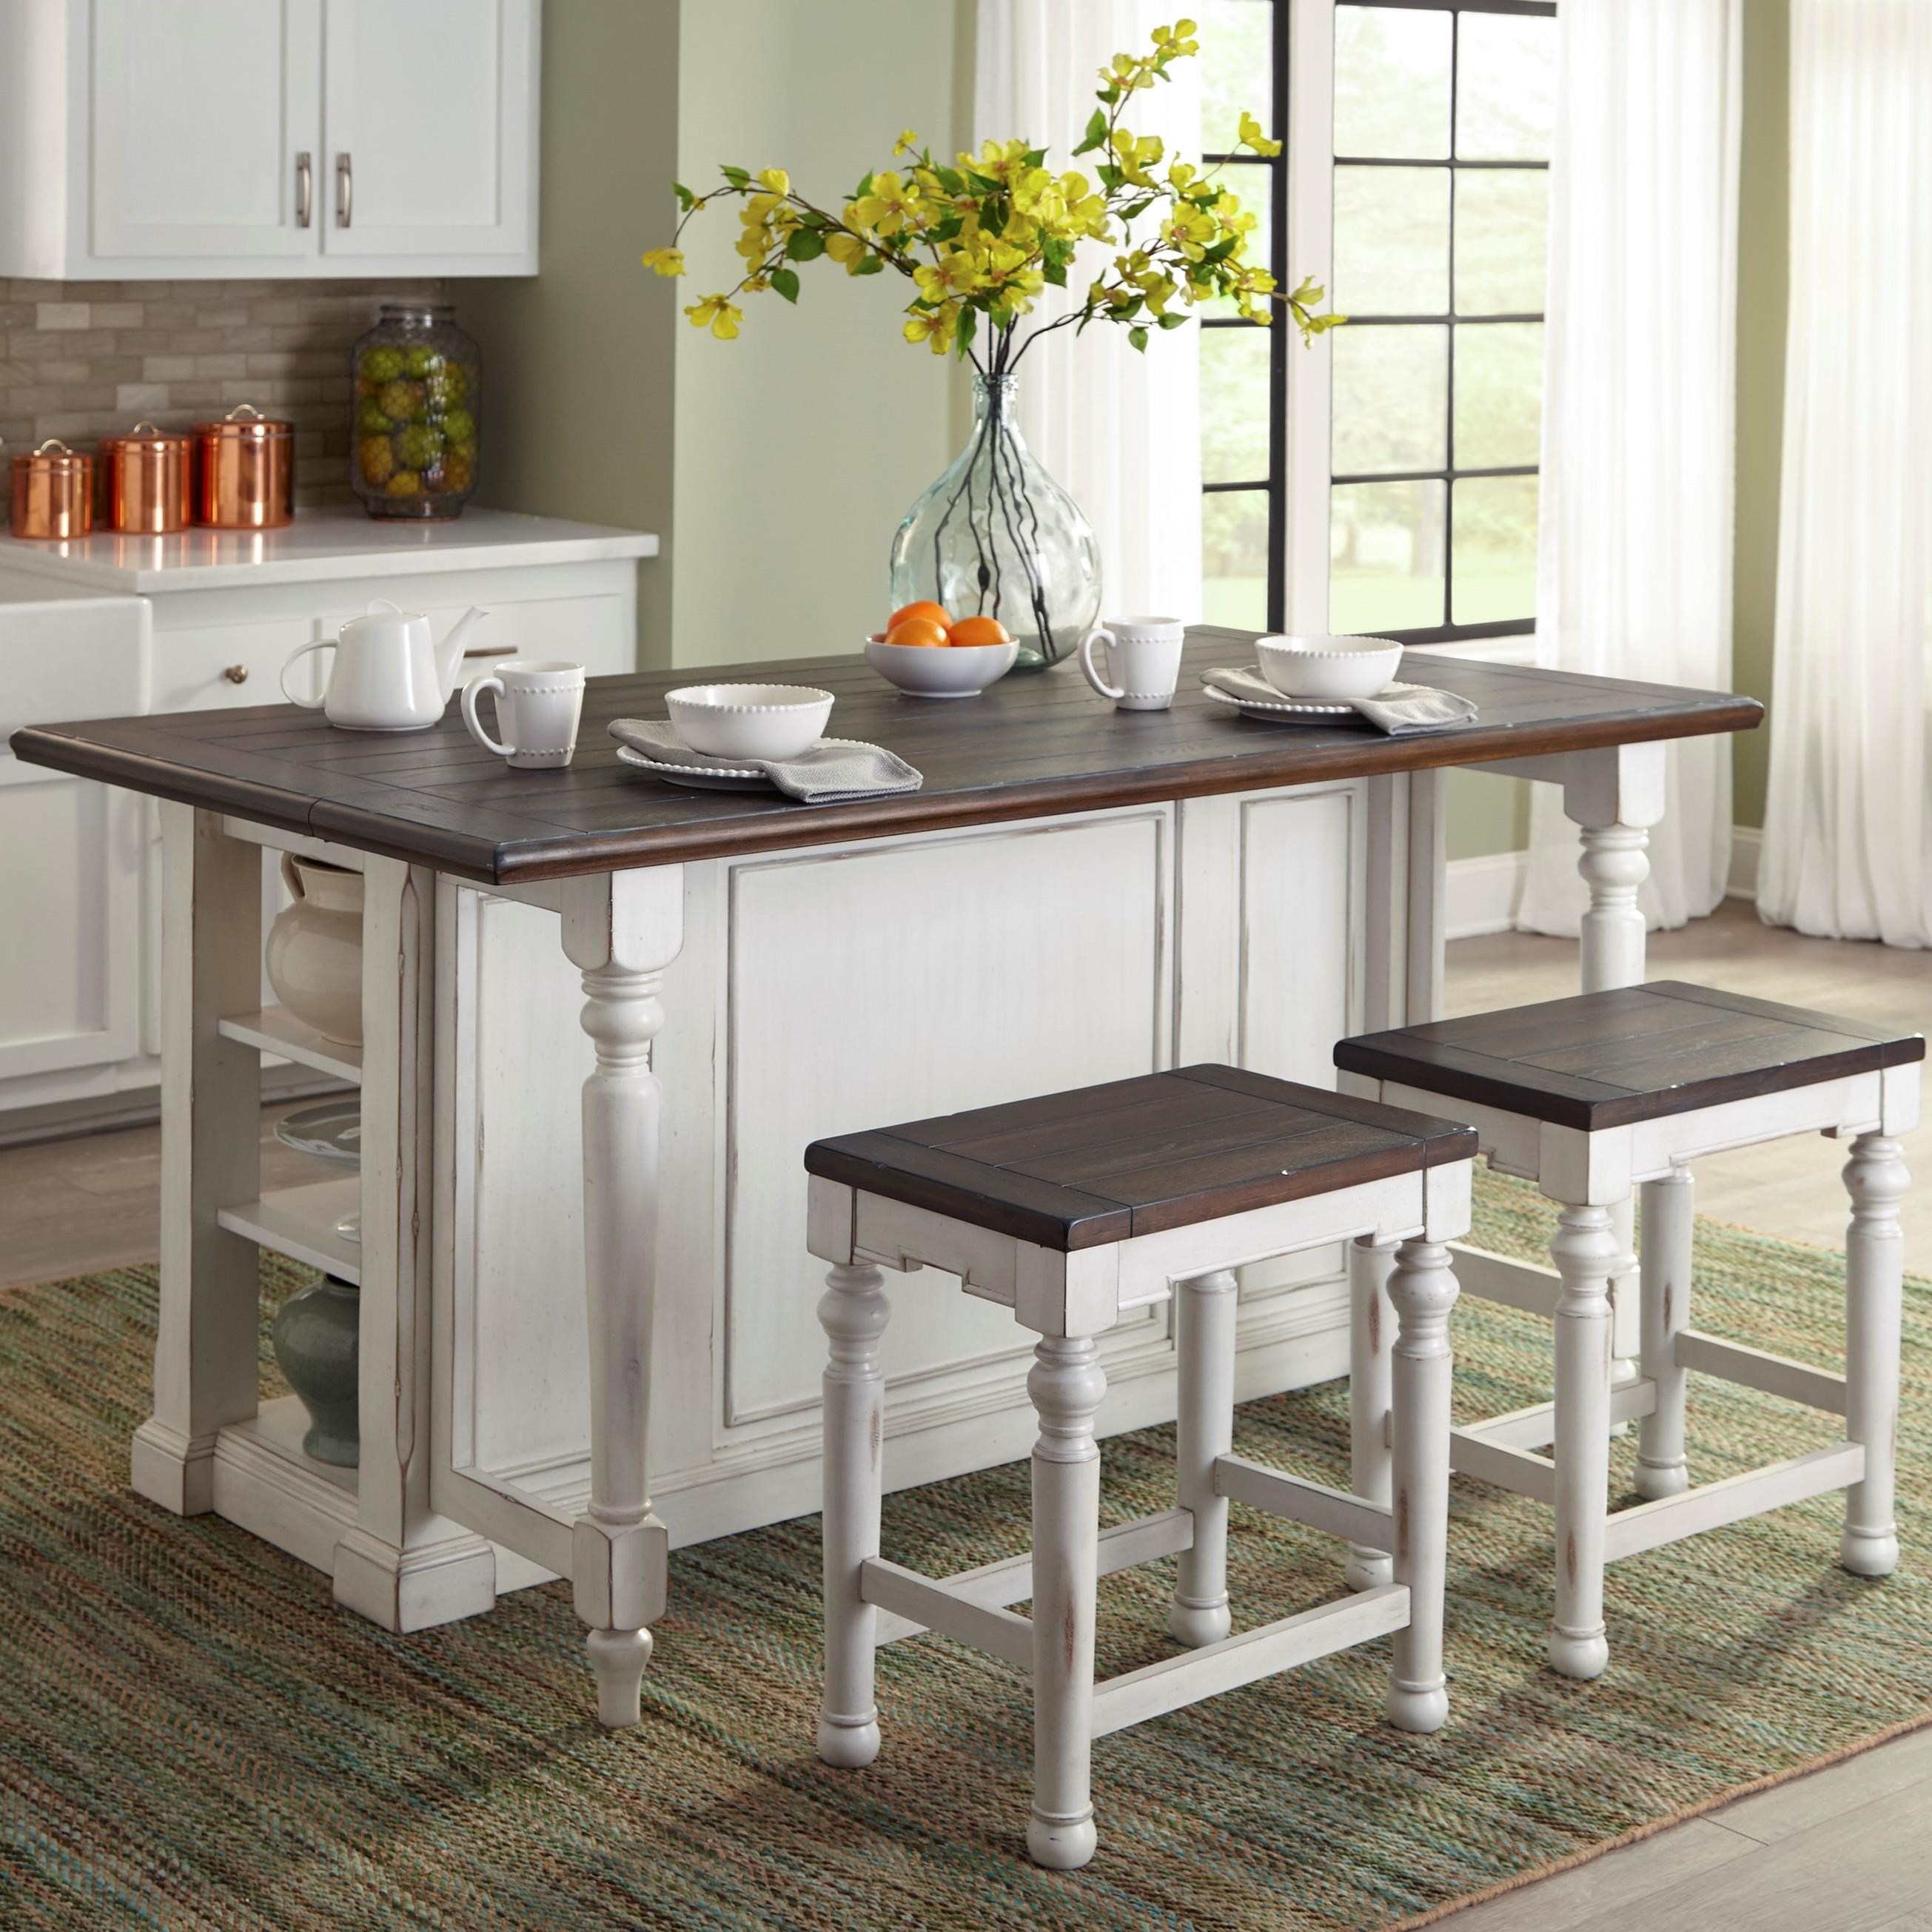 Kitchen Island Table And Chairs: 3 Piece Kitchen Island Set With Gate Leg By Sunny Designs